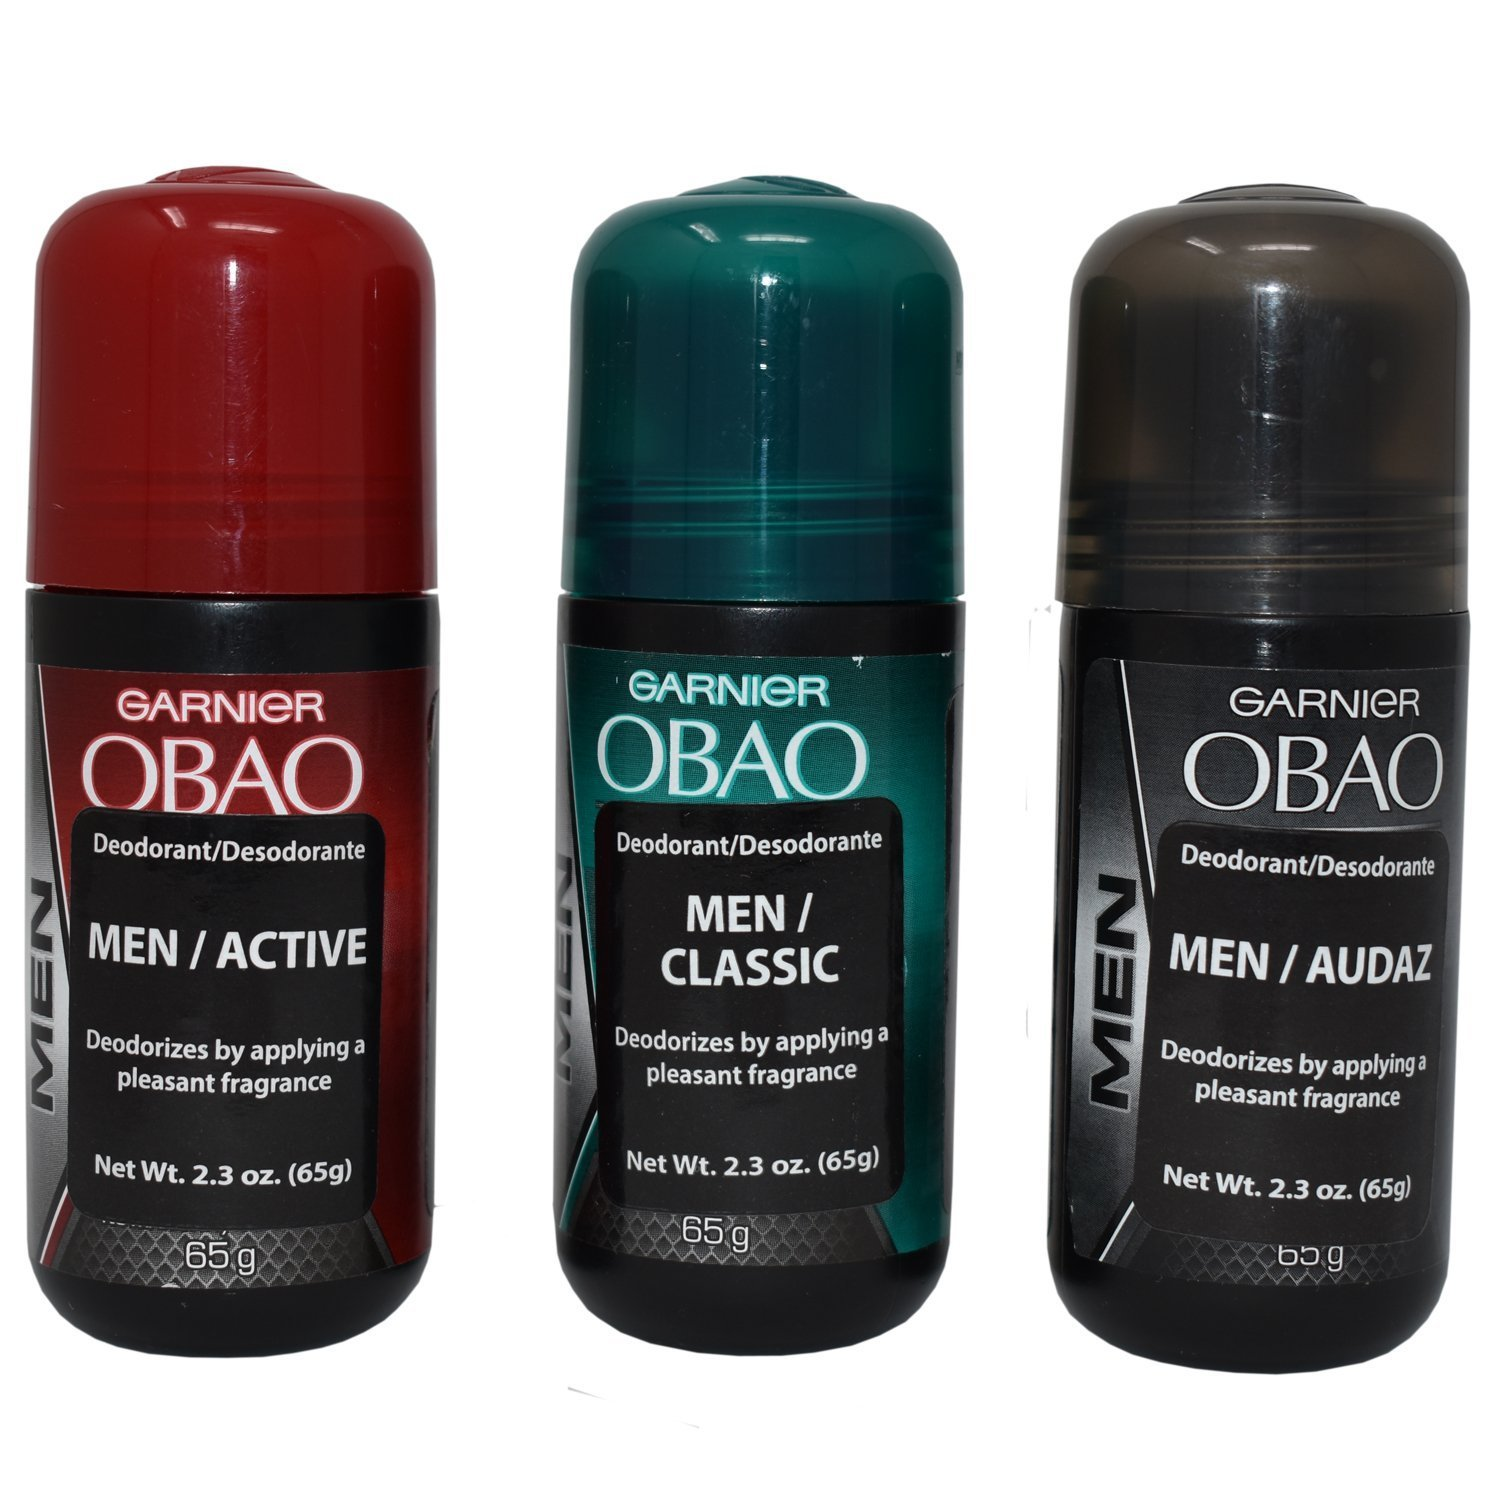 OBAO Assorted Deodorant for Men 3 of Pack - Free Finally resale start shipping